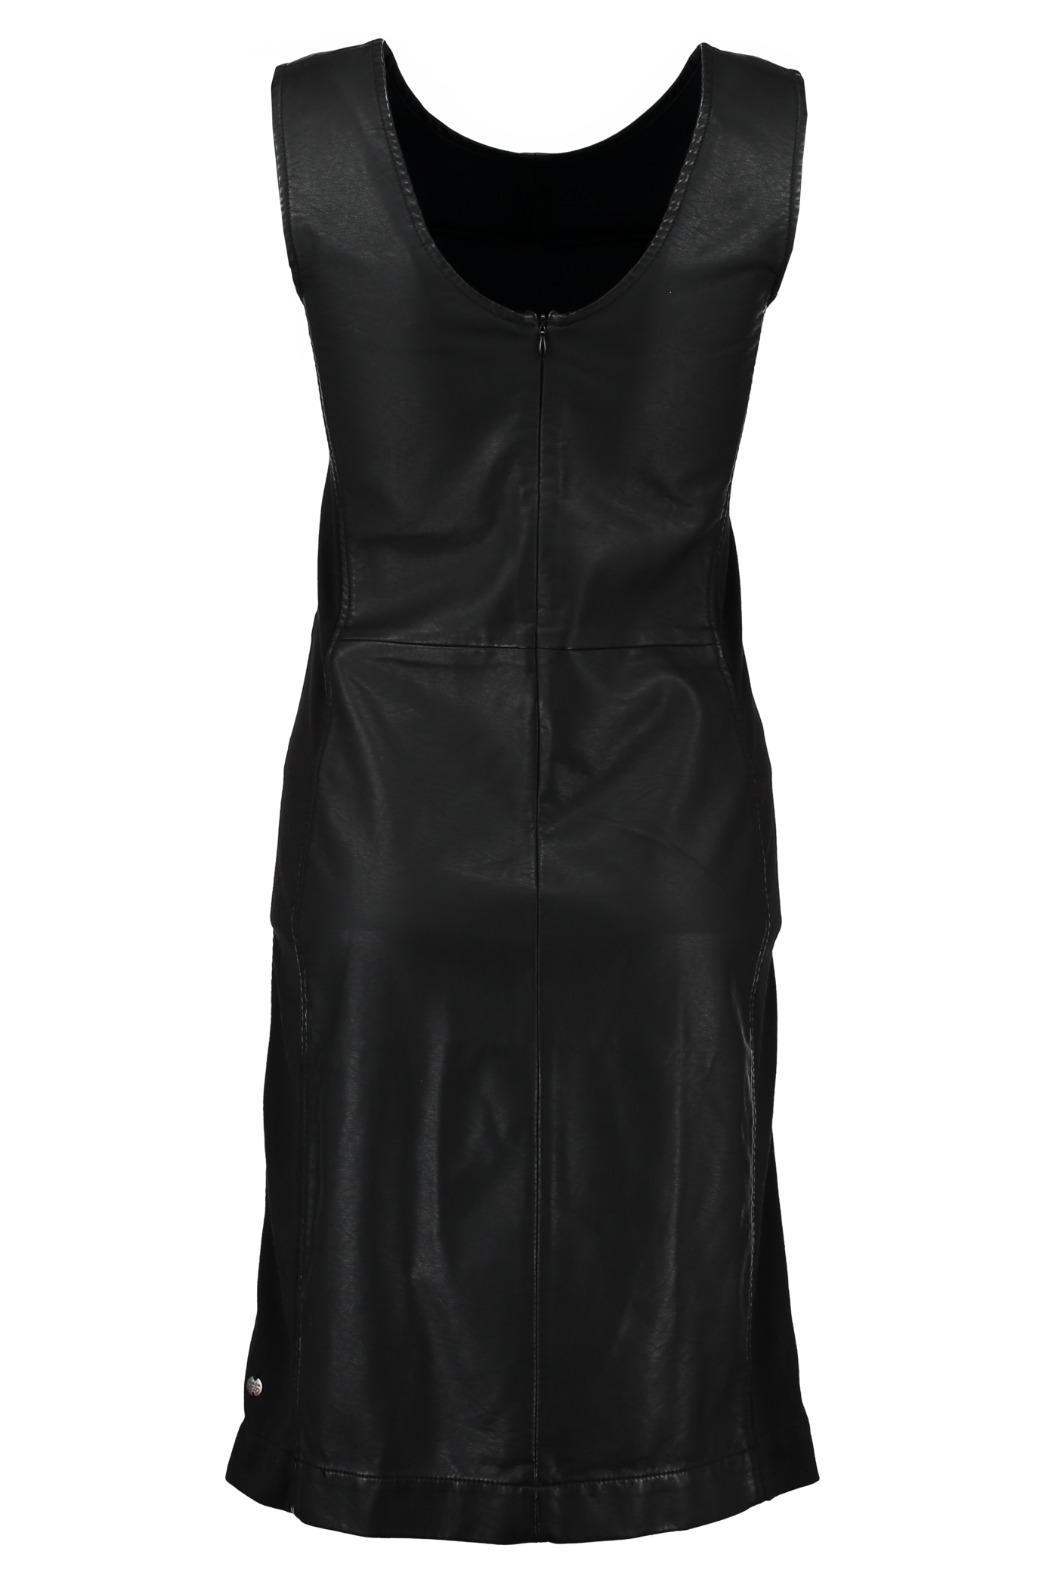 Garcia Jeans Pleather Dress - Side Cropped Image